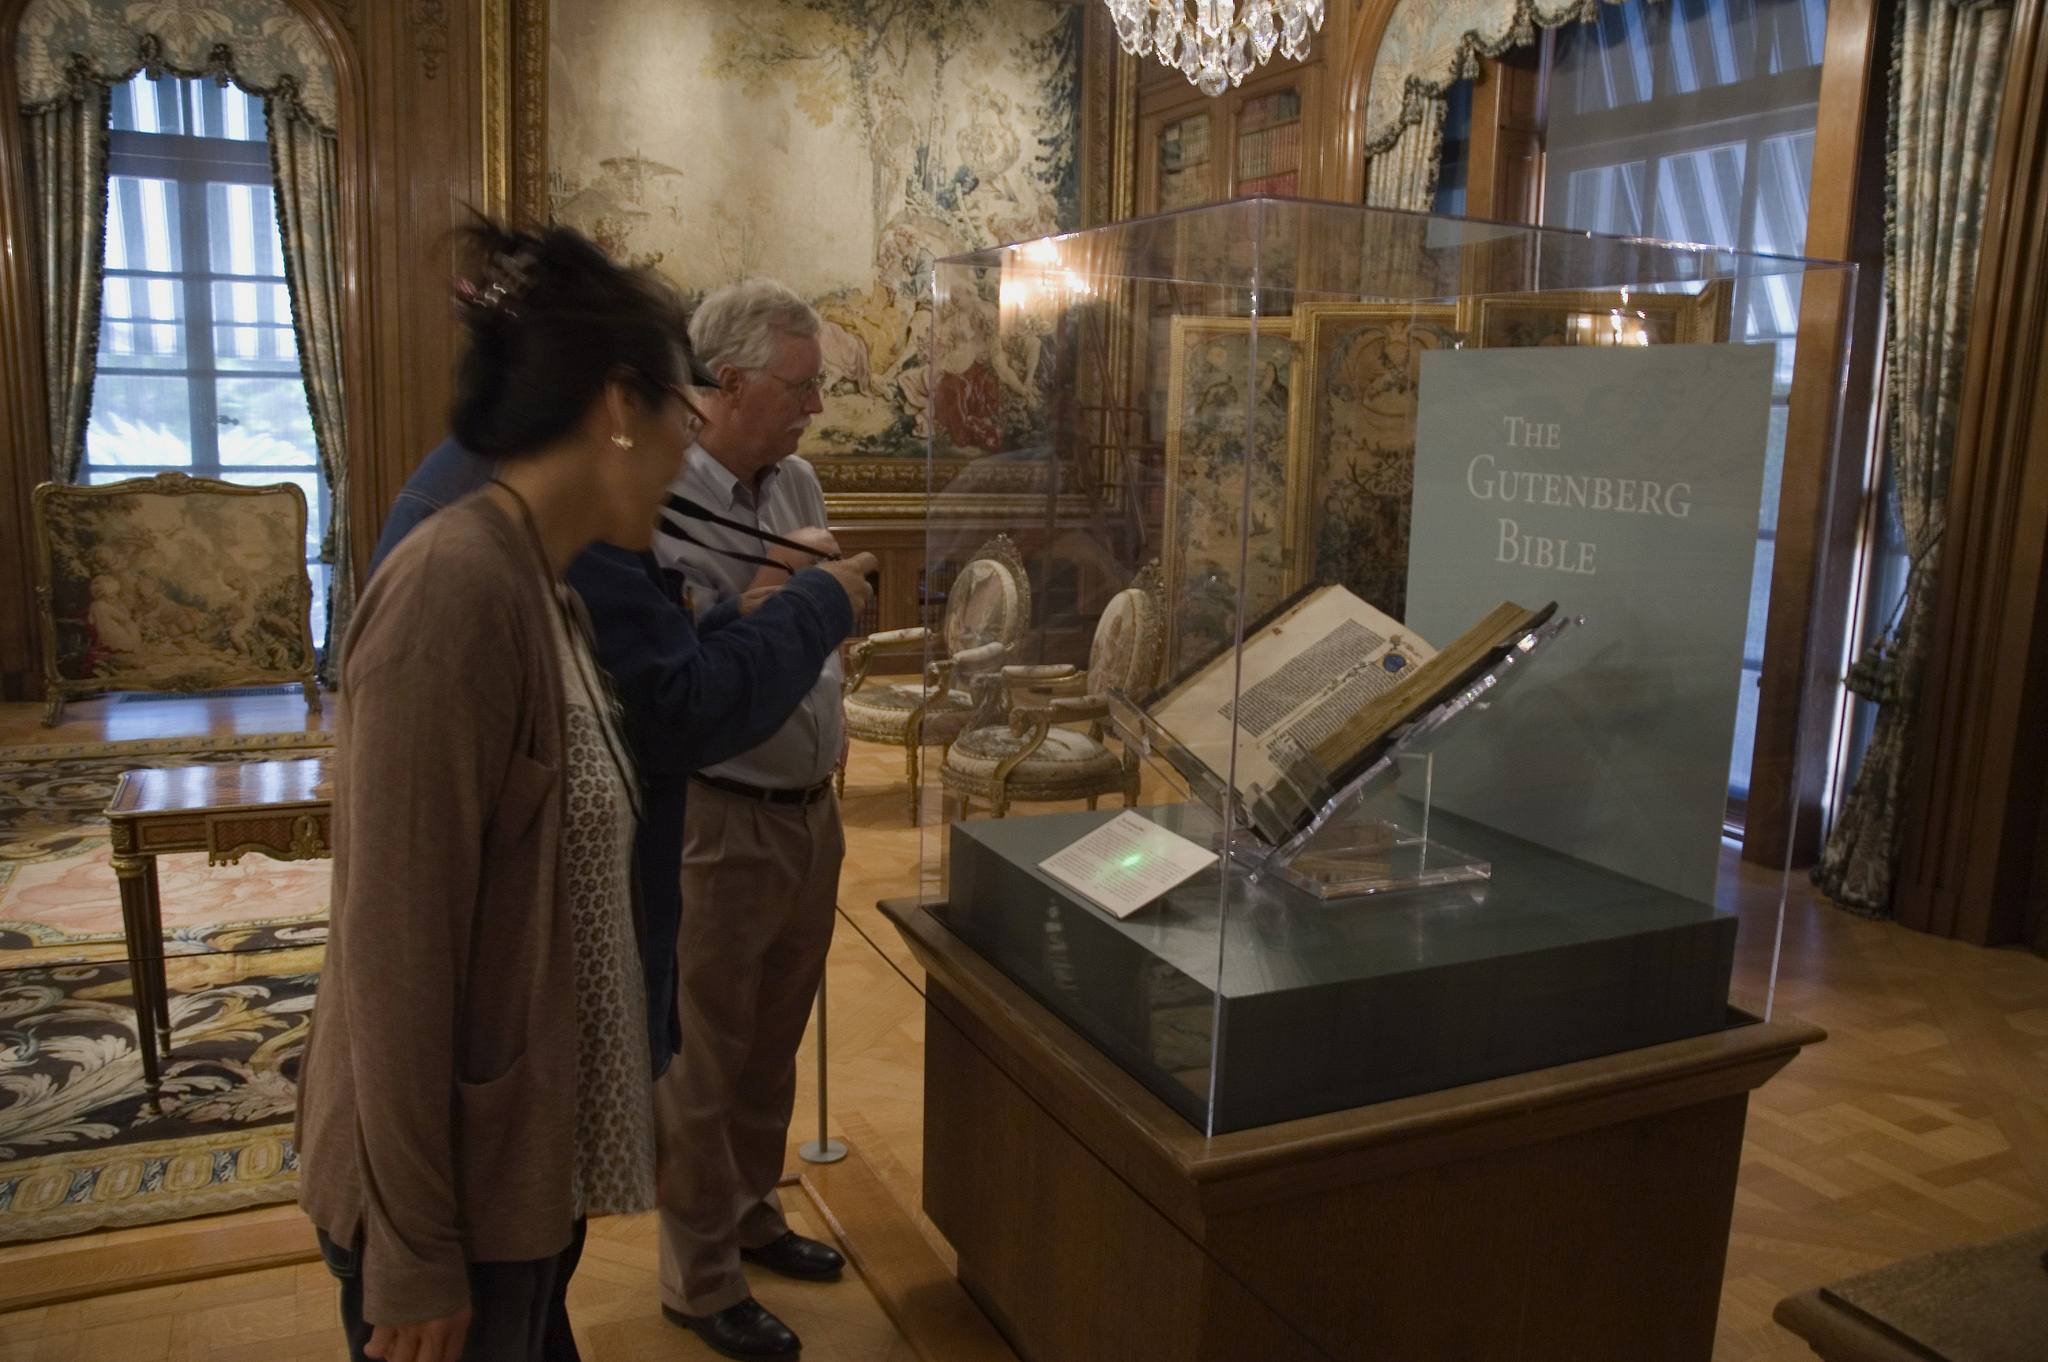 Huntington Library Gutenberg Bible